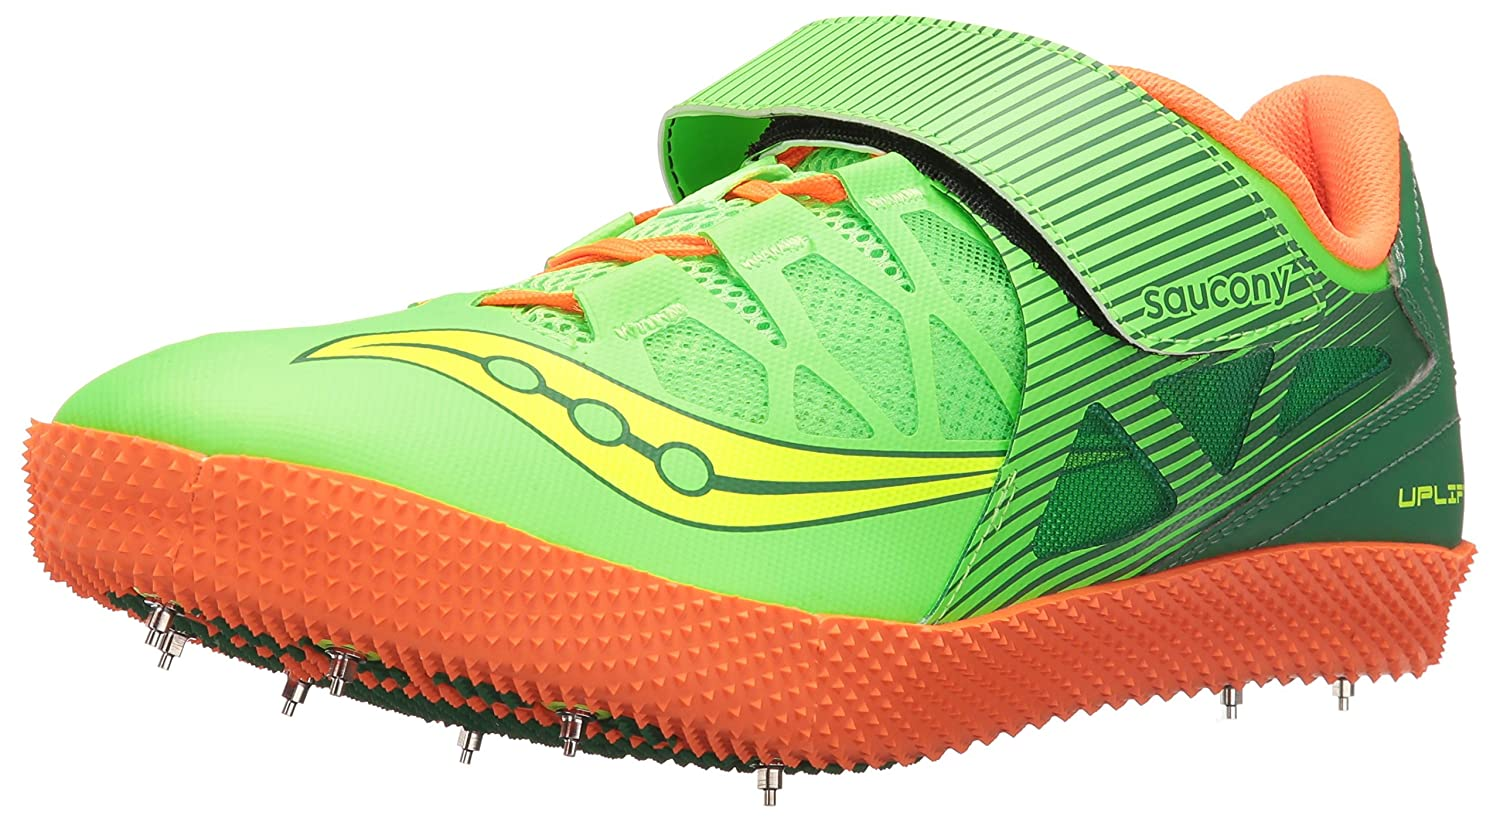 Saucony Men's Uplift HJ2 Track Shoe B01DAYH6QS 11 D(M) US|Citron/Vizi Orange